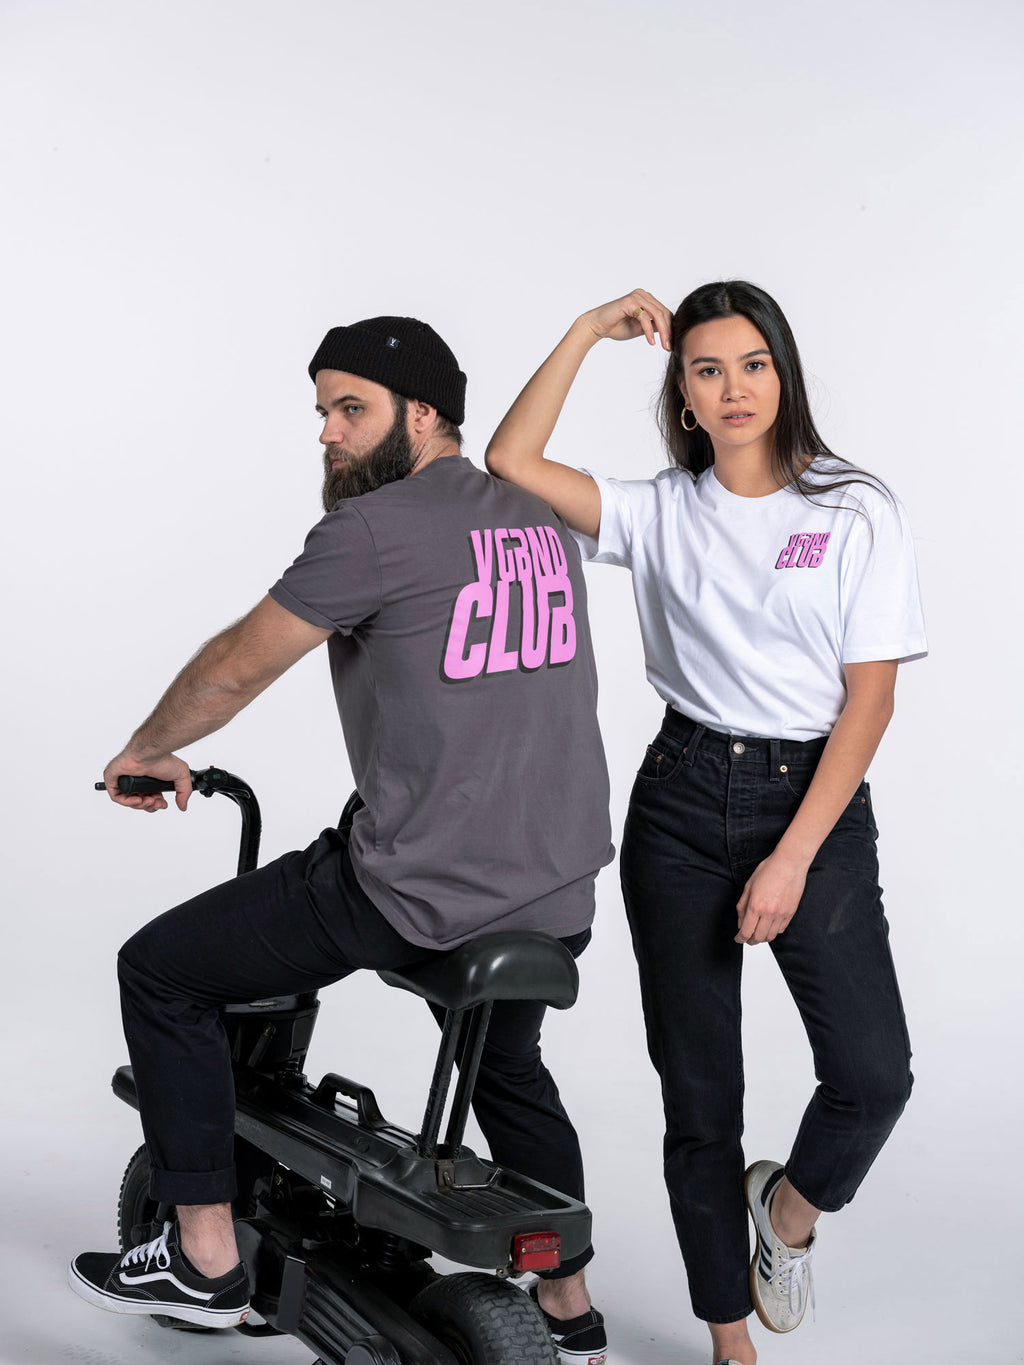 VGB Club T-shirt Unisex